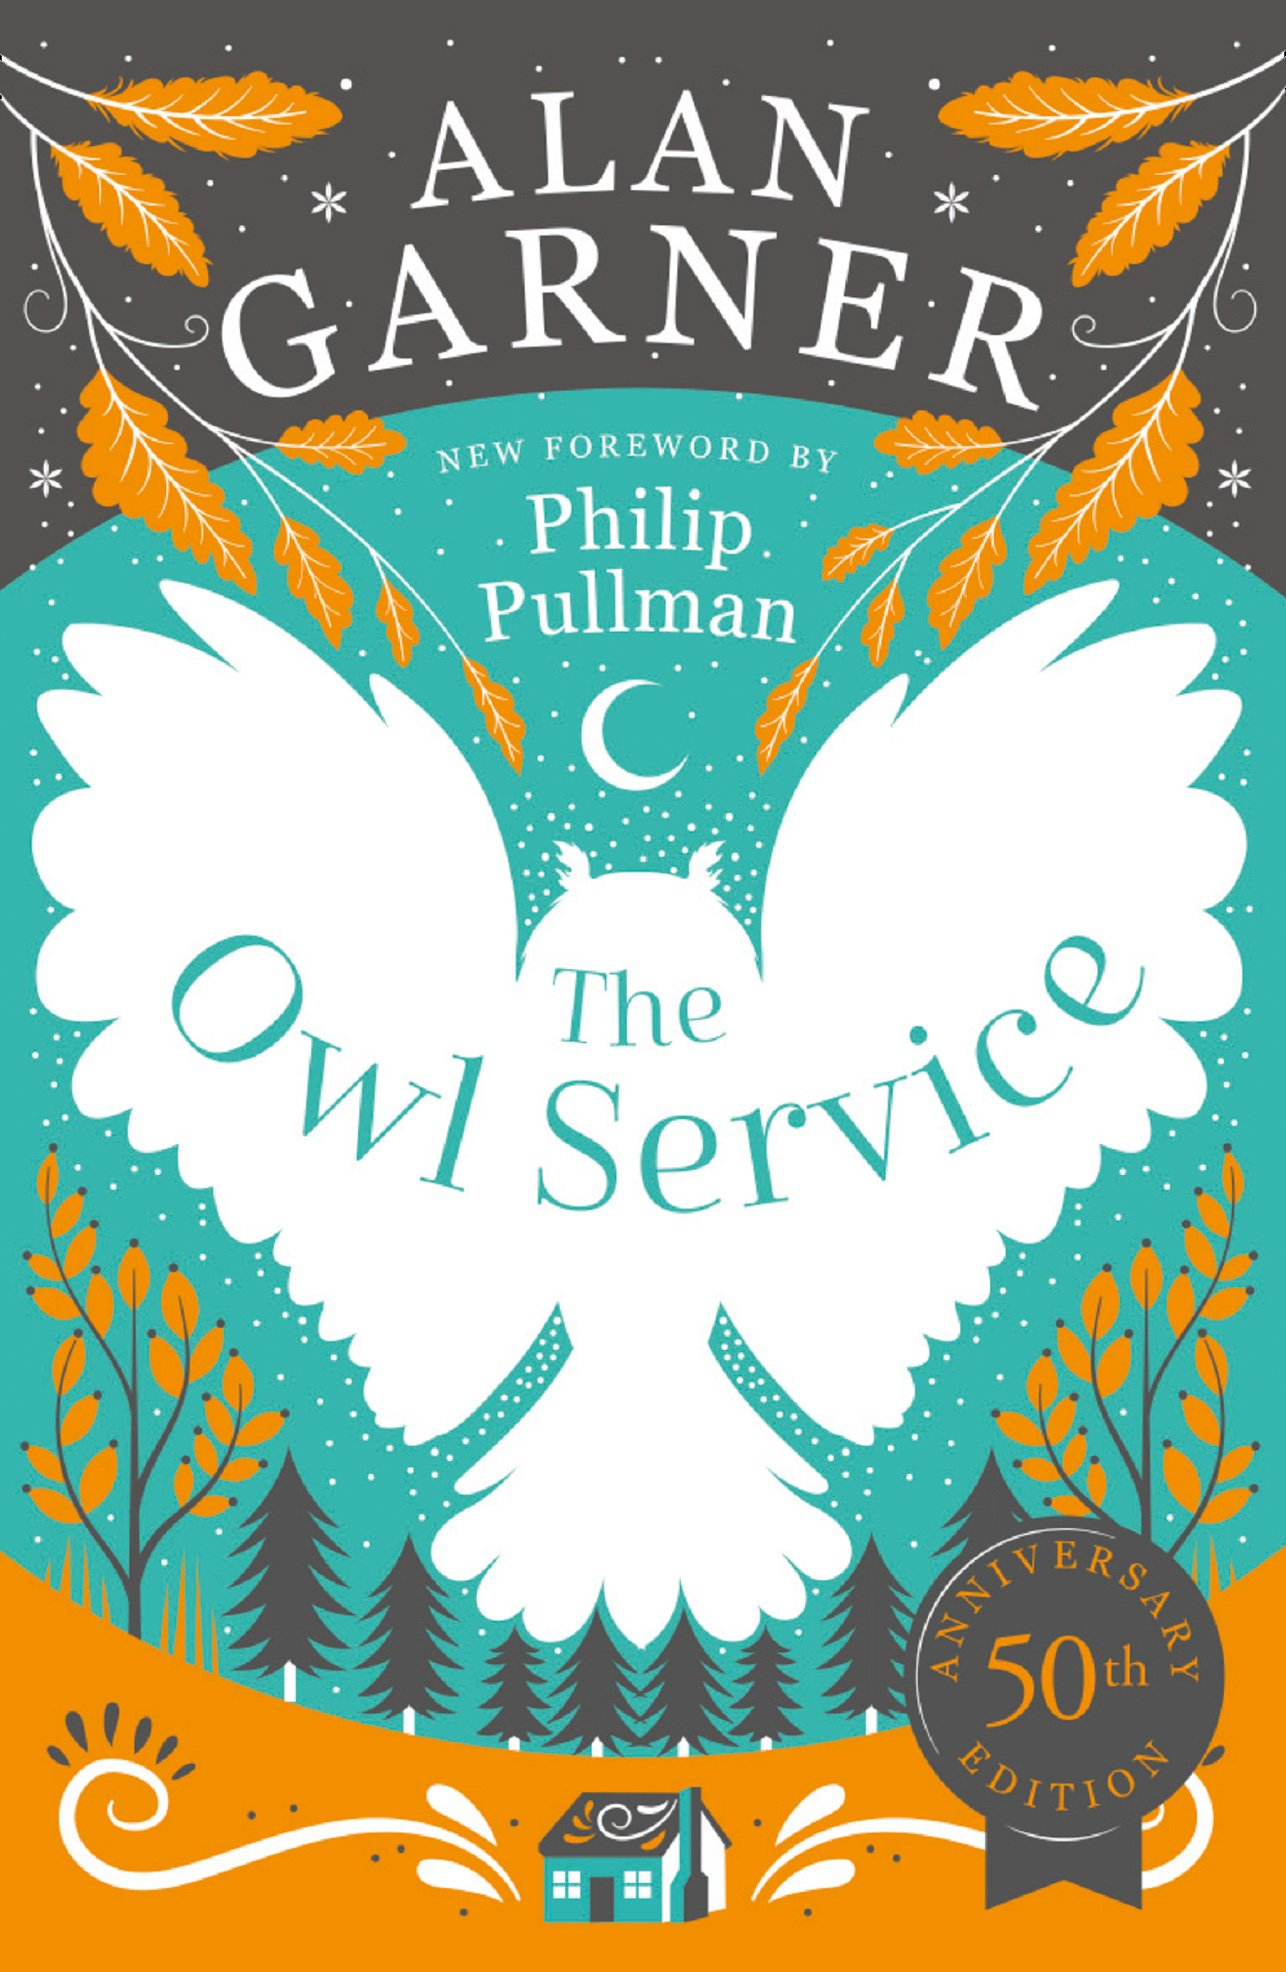 Read Online The Owl Service PDF